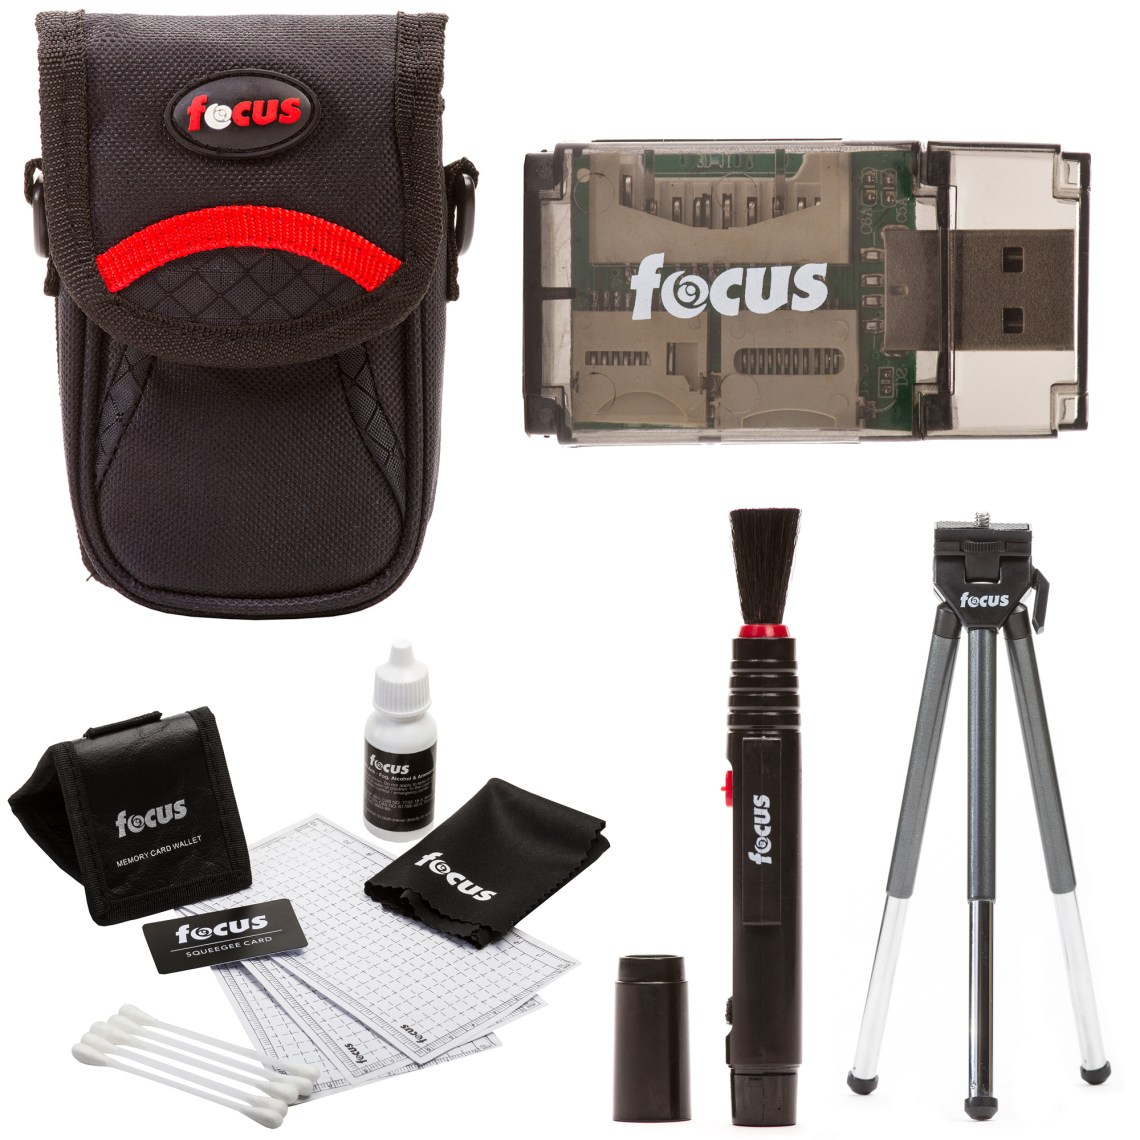 Point and Shoot Accessories for Small Size CamerasBundle Includes:•  Focus Standard Small Digital Camera Case•  Focus 5 Piece Digital Camera Accessory Kit•  Focus Lens Cleaning Pen• Focus All In One High Speed USB 2.0 Card Reader•  Focus Deluxe 8 Inch Table Tripod